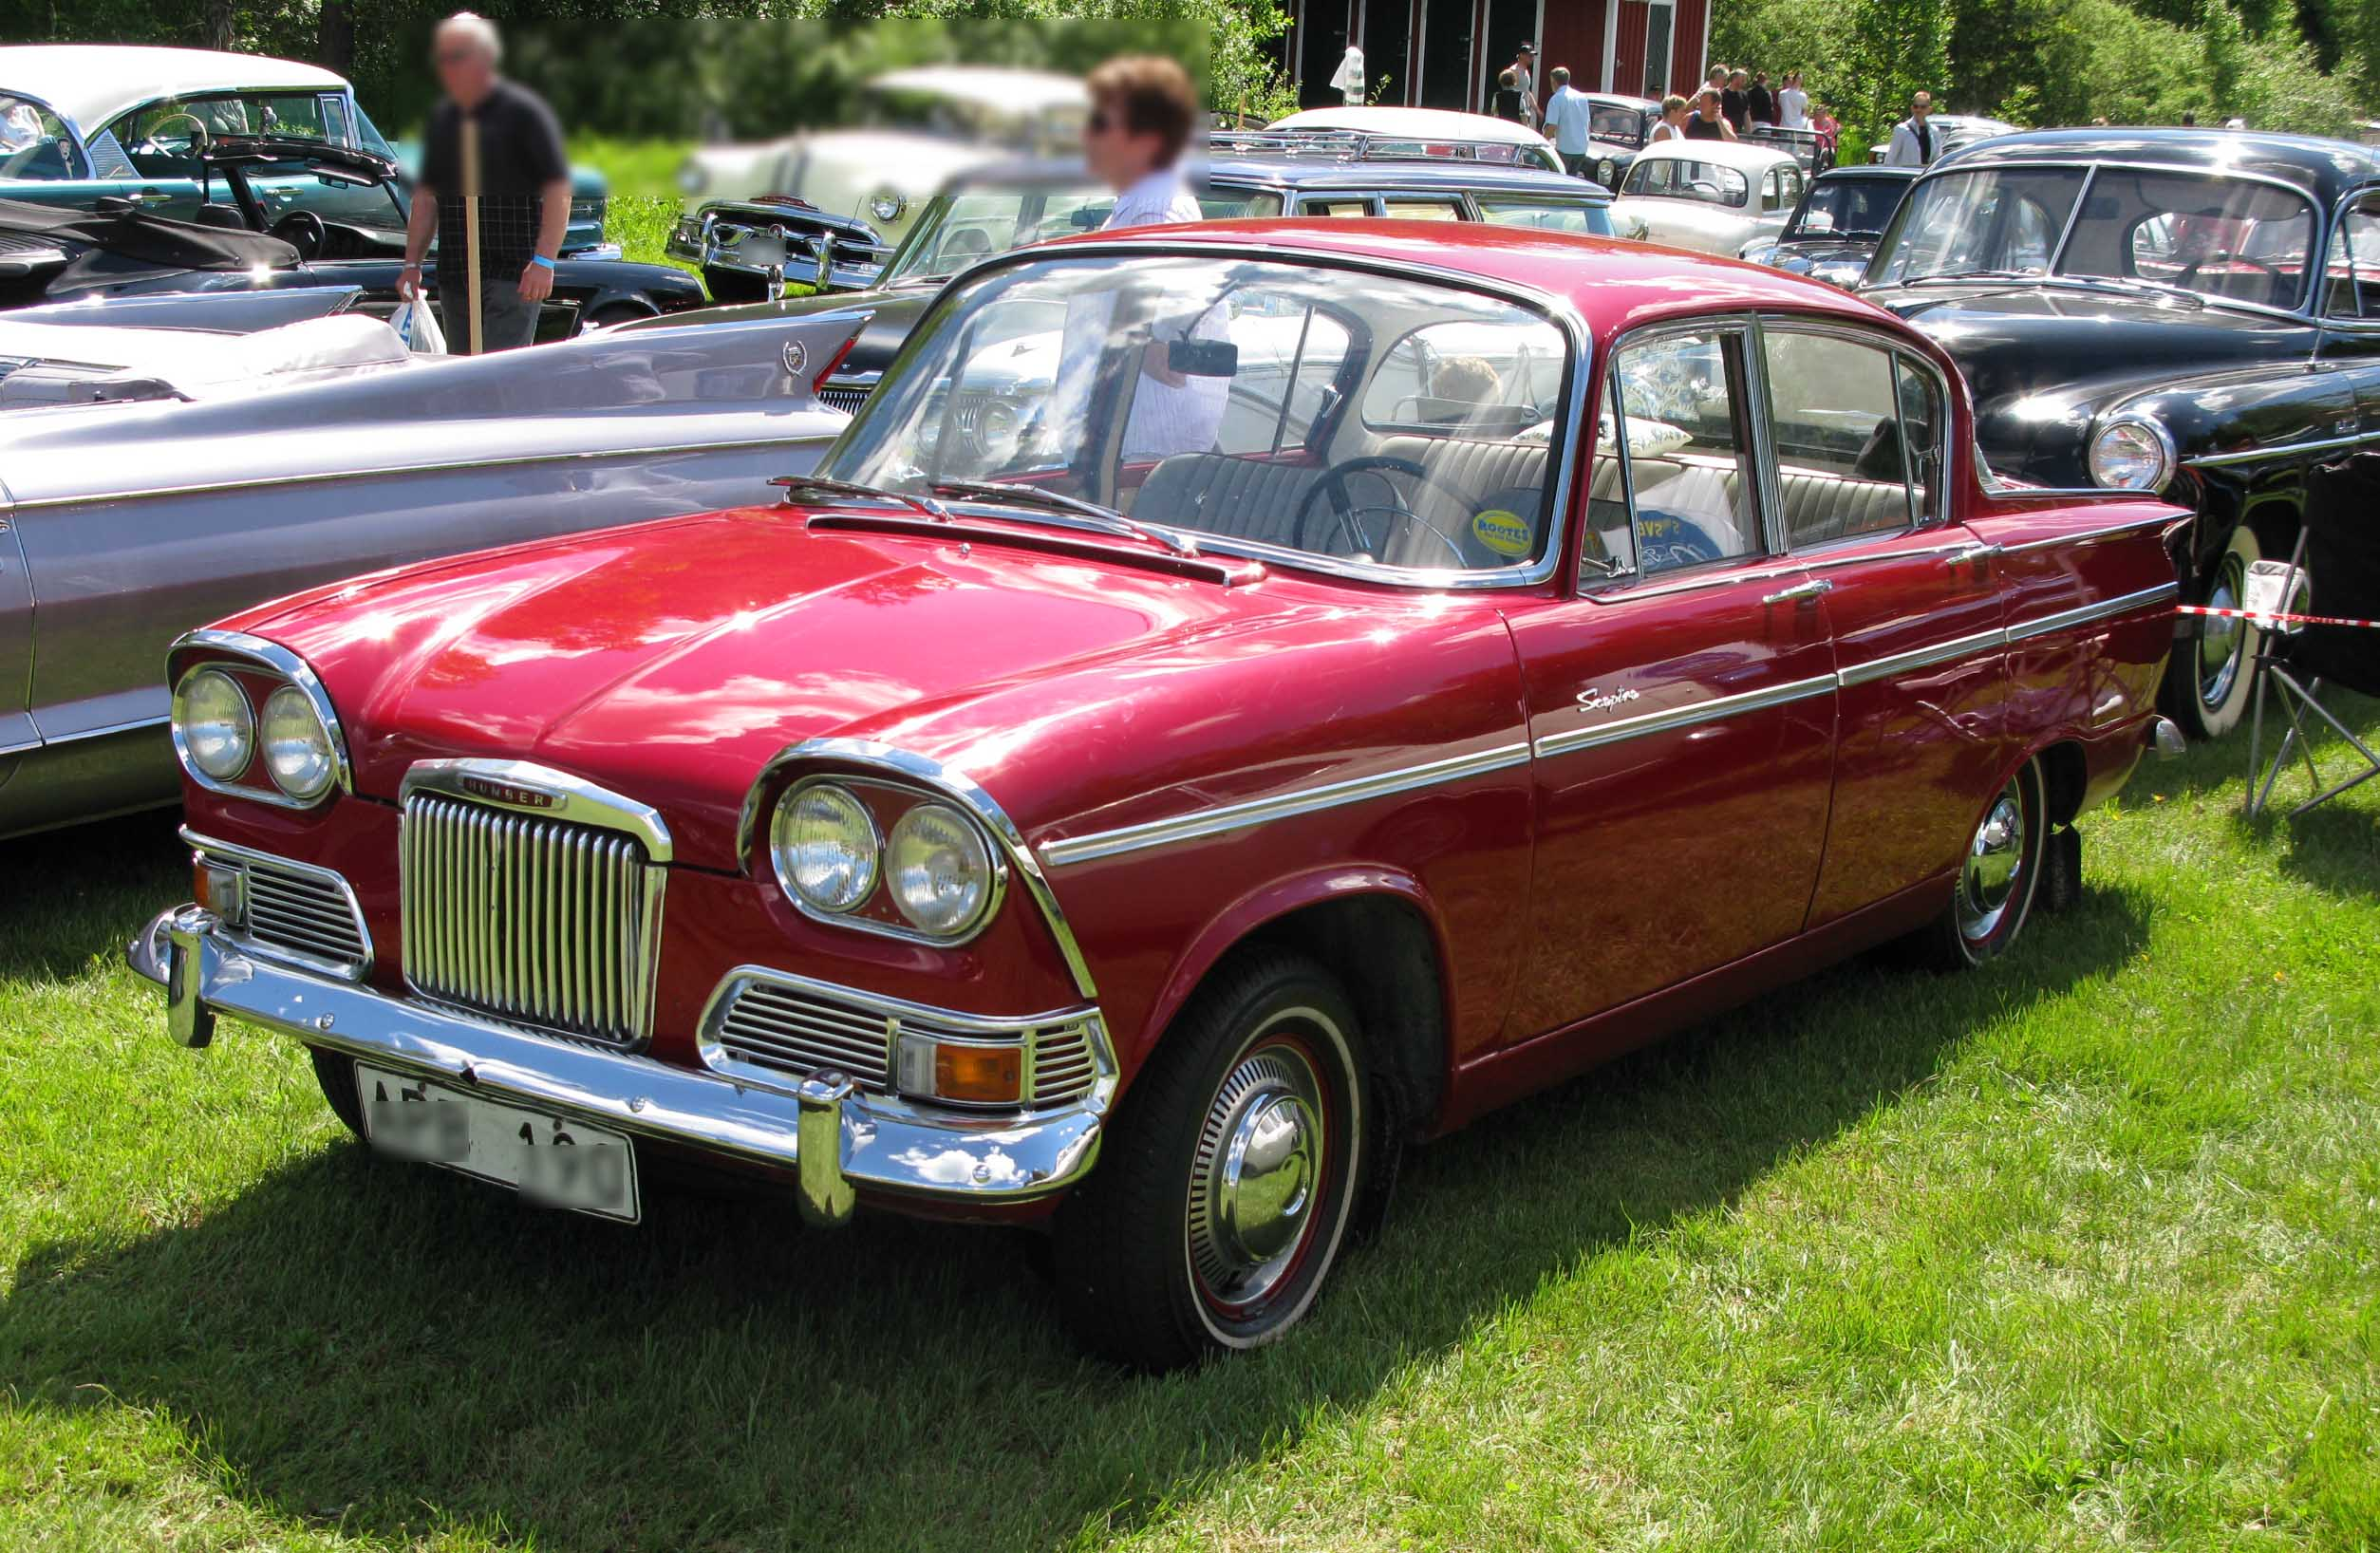 Humber sceptre photo - 1